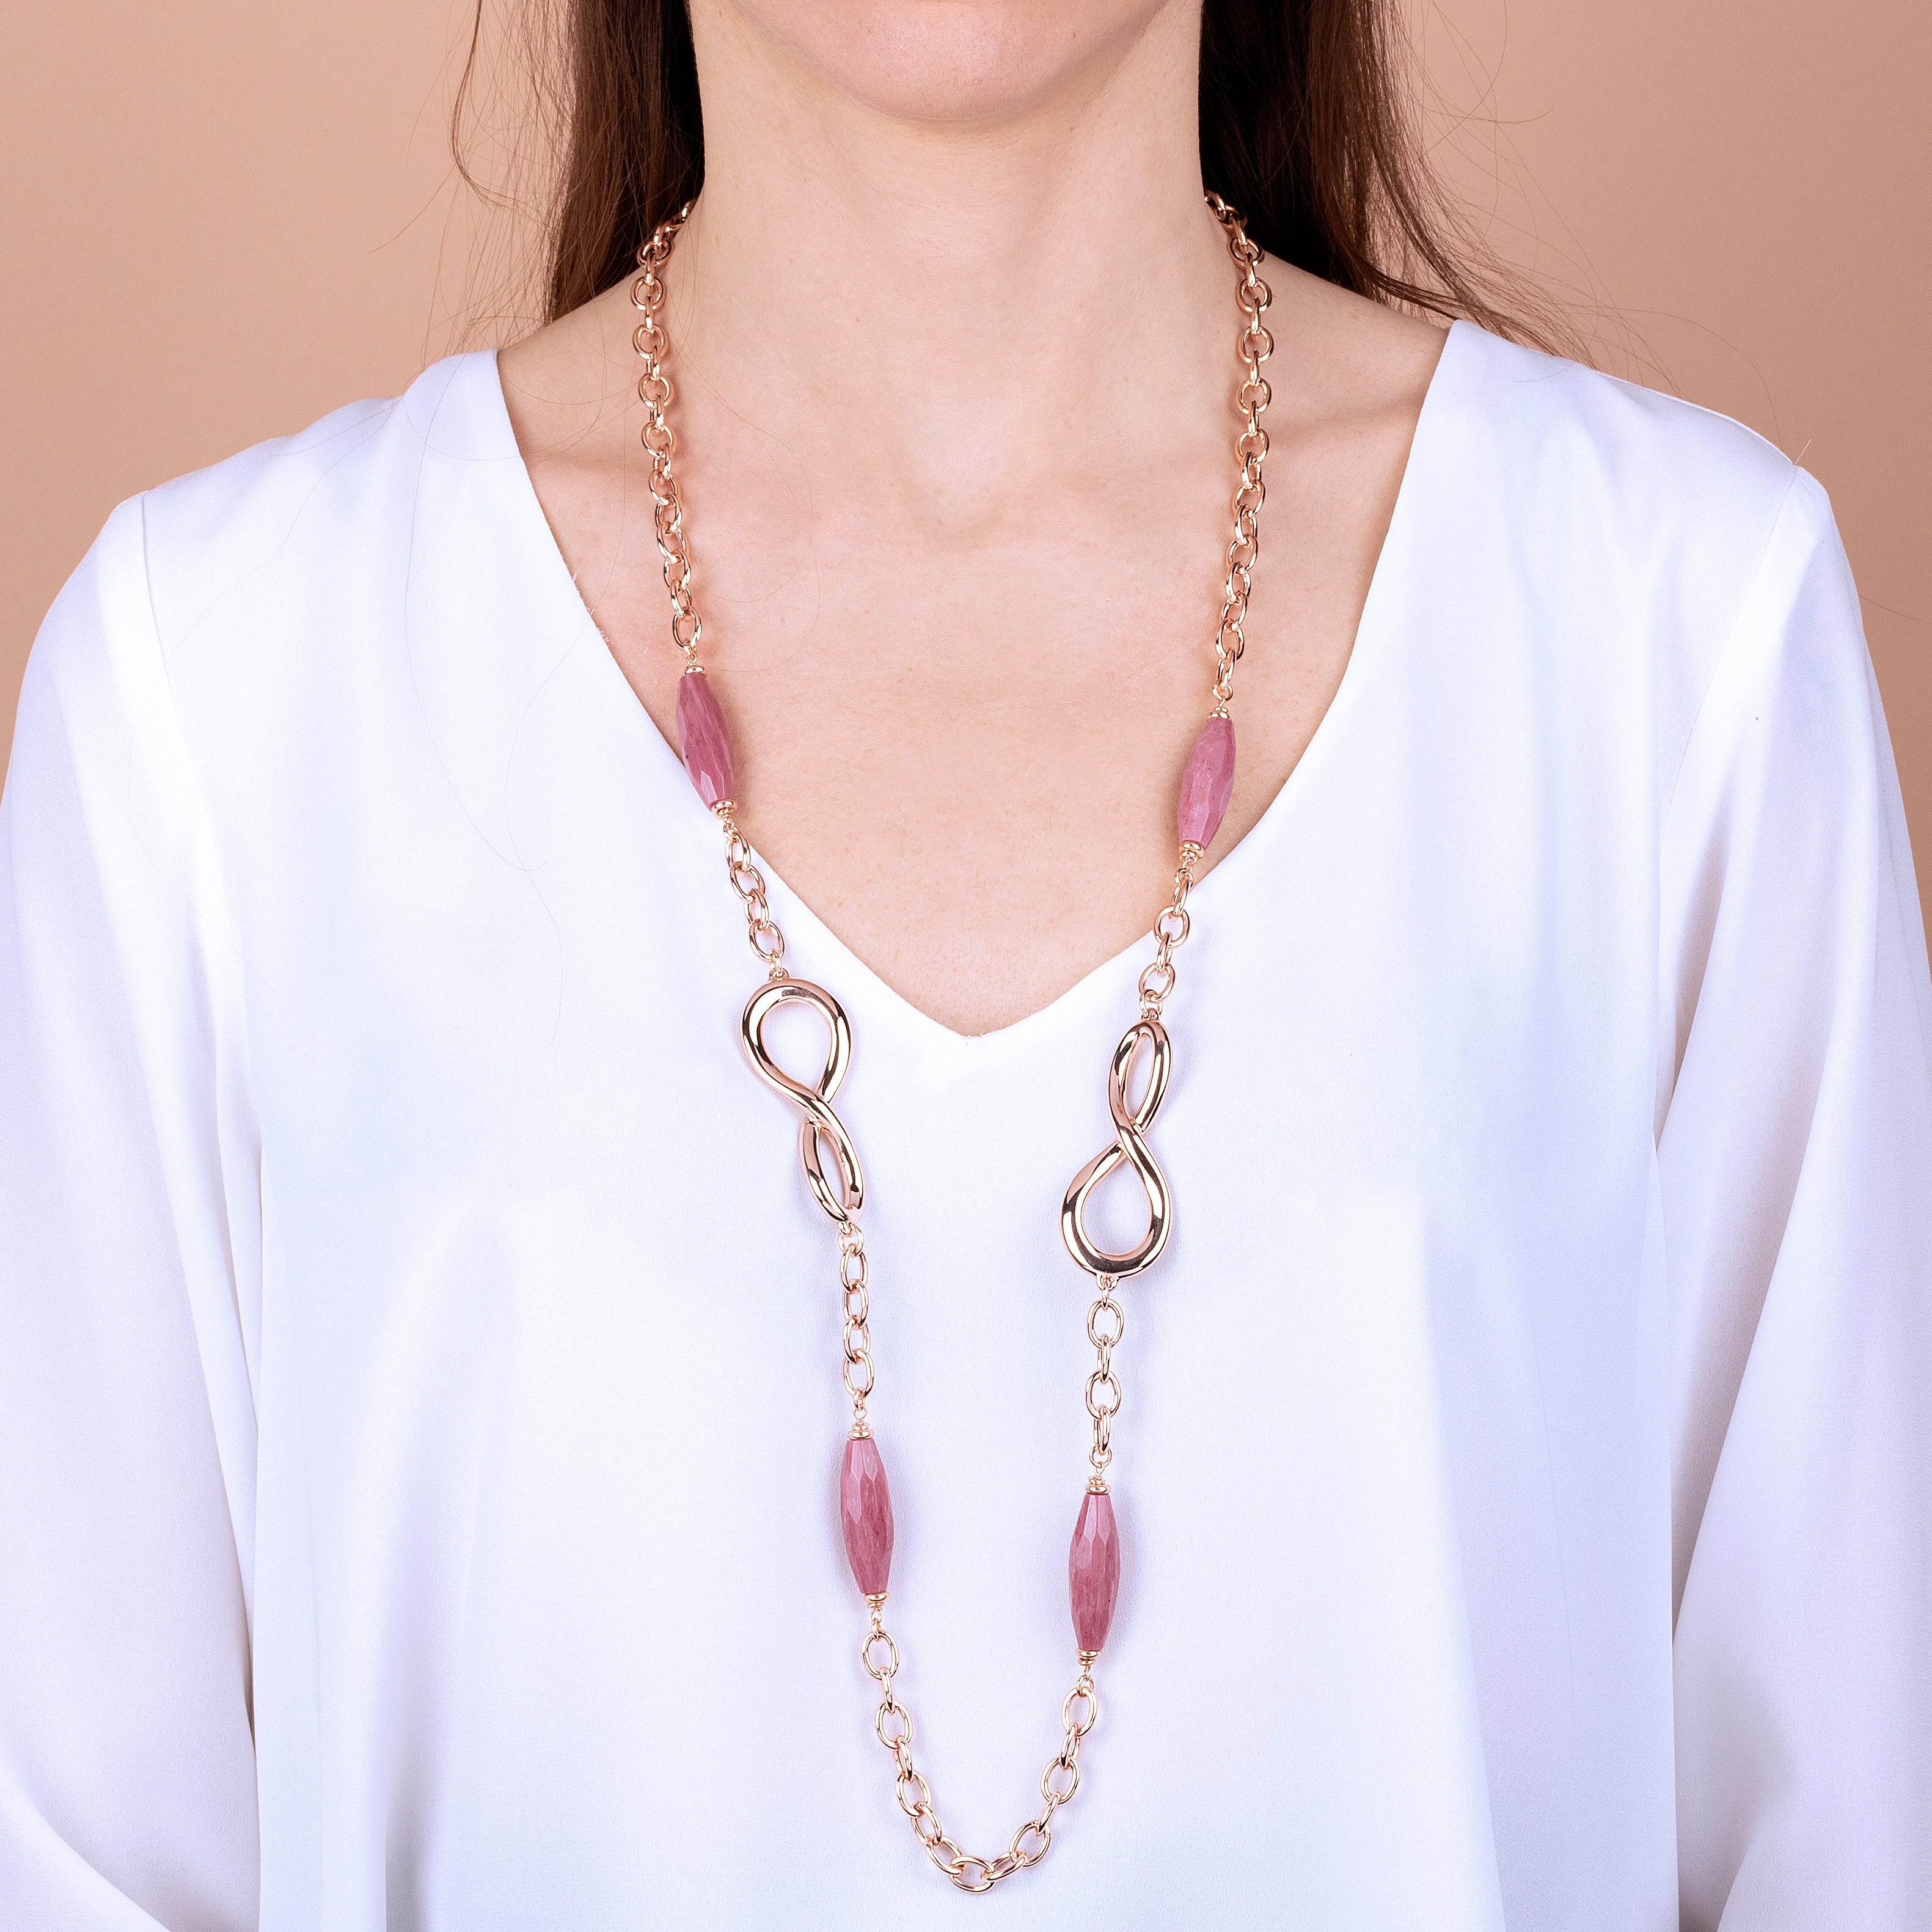 Infinity Long Necklace with Gemstones